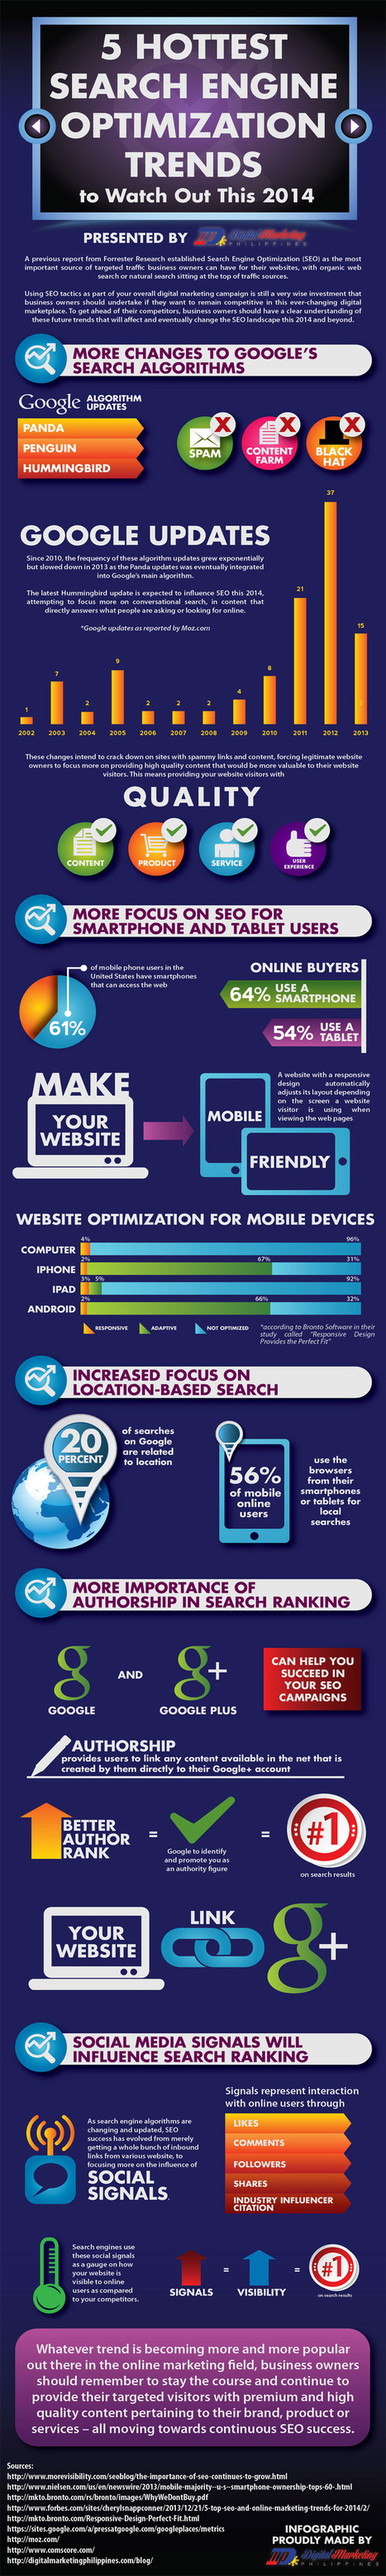 5 SEO trends for 2014 - INFOGRAPHIC | SEO 101 for Marketers | Scoop.it